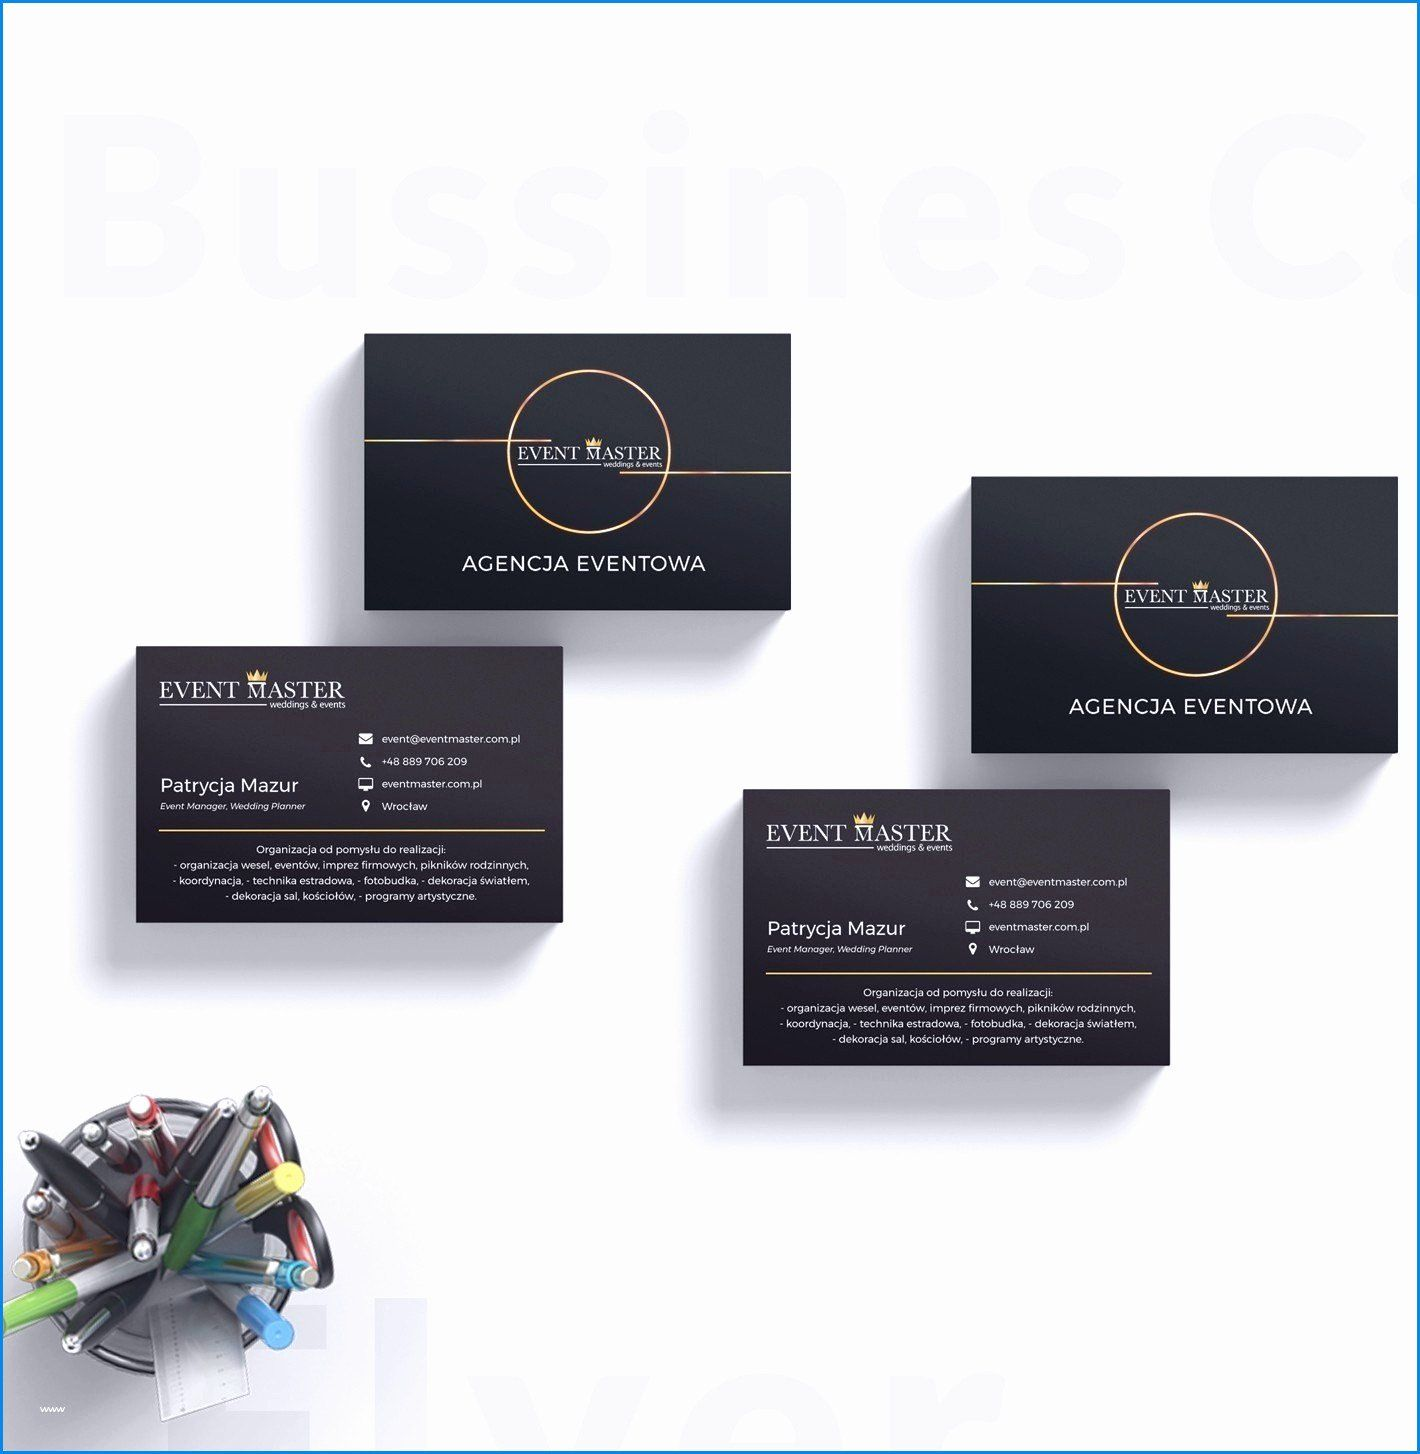 Meet And Greet Invitation Templates Best Of Image Business Event Invite Tem Event Planning Business Cards Wedding Planner Business Card Event Planning Business